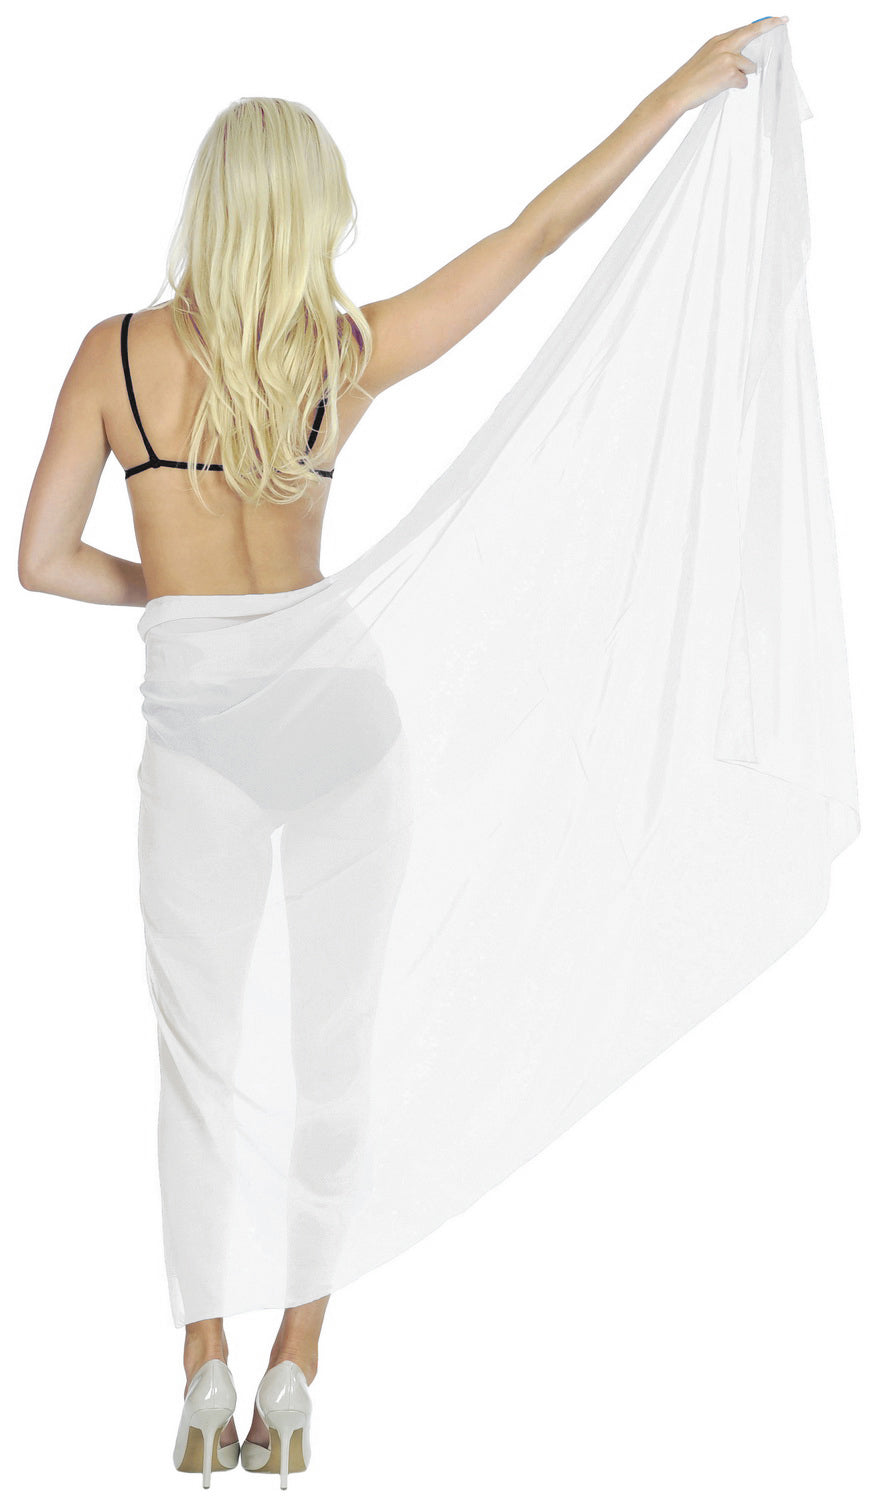 la-leela-sheer-chiffon-long-swim-dress-beach-sarong-solid-72x42-white_1701